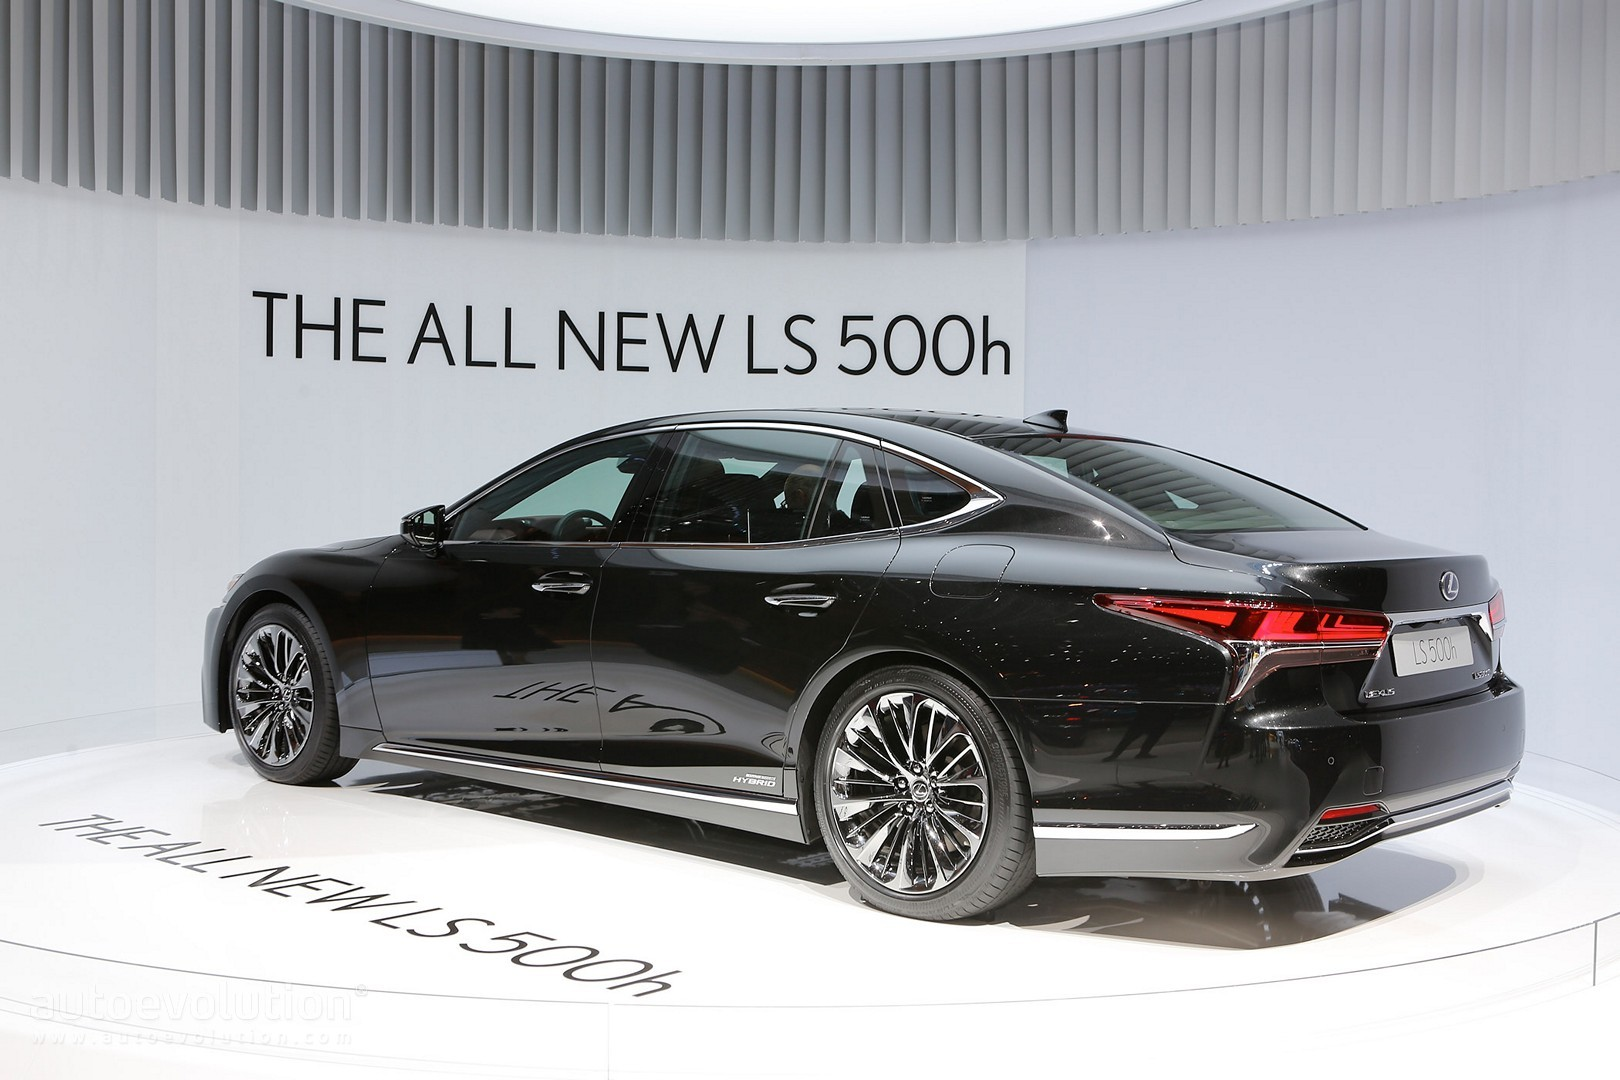 https://s1.cdn.autoevolution.com/images/news/gallery/2018-lexus-ls-500-f-sport-will-touch-down-at-the-2017-nyias_14.jpg